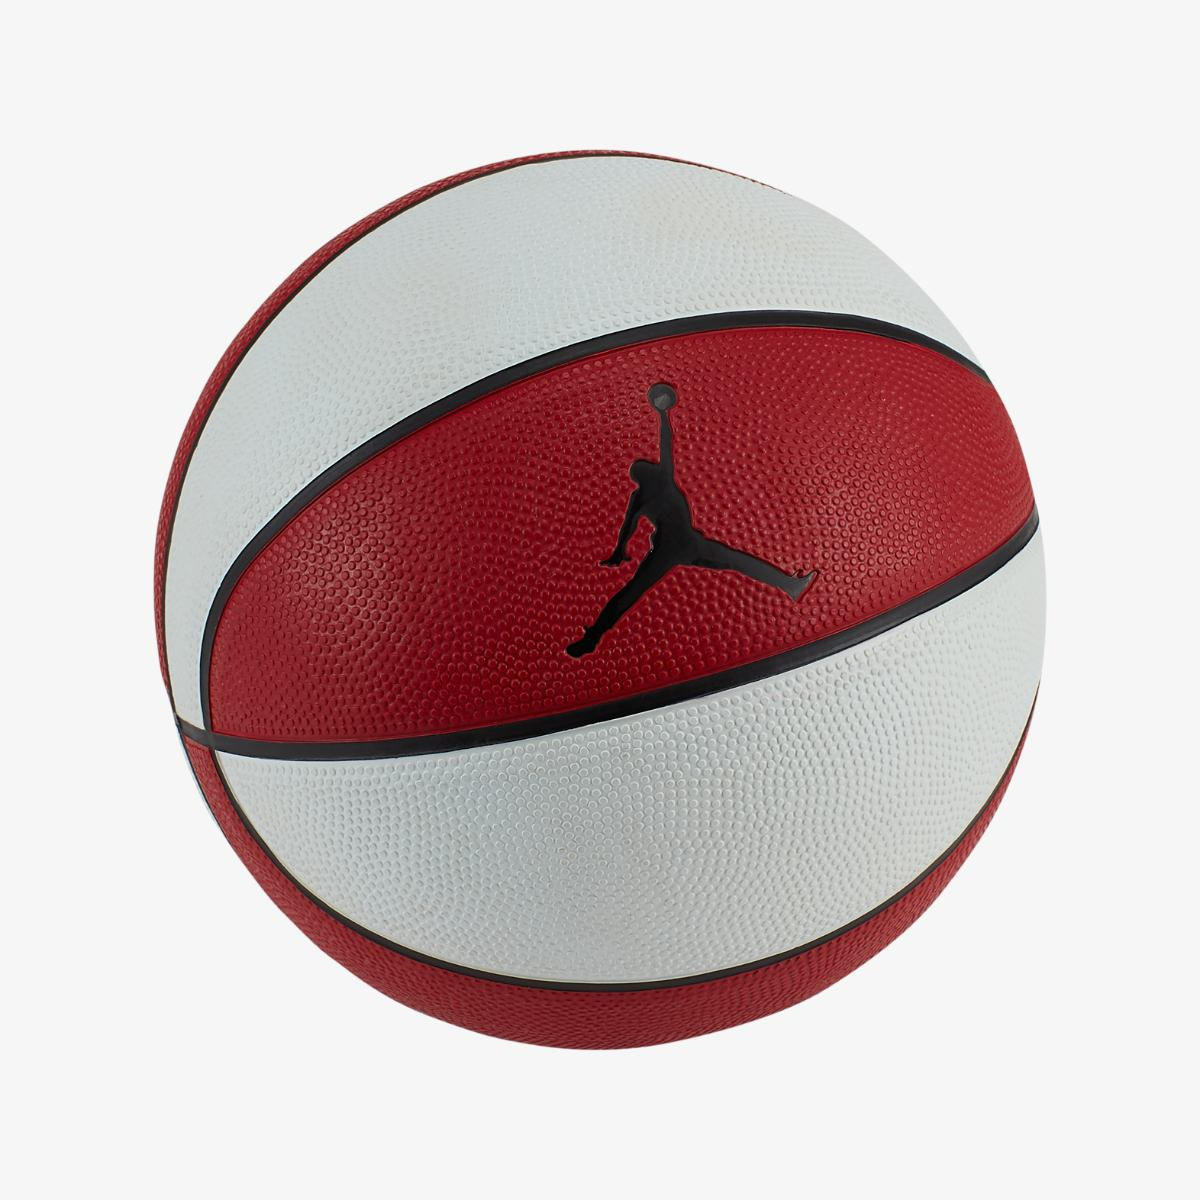 Мяч баскетбольный JORDAN SKILLS GYM RED/WHITE/BLACK/BLACK 03